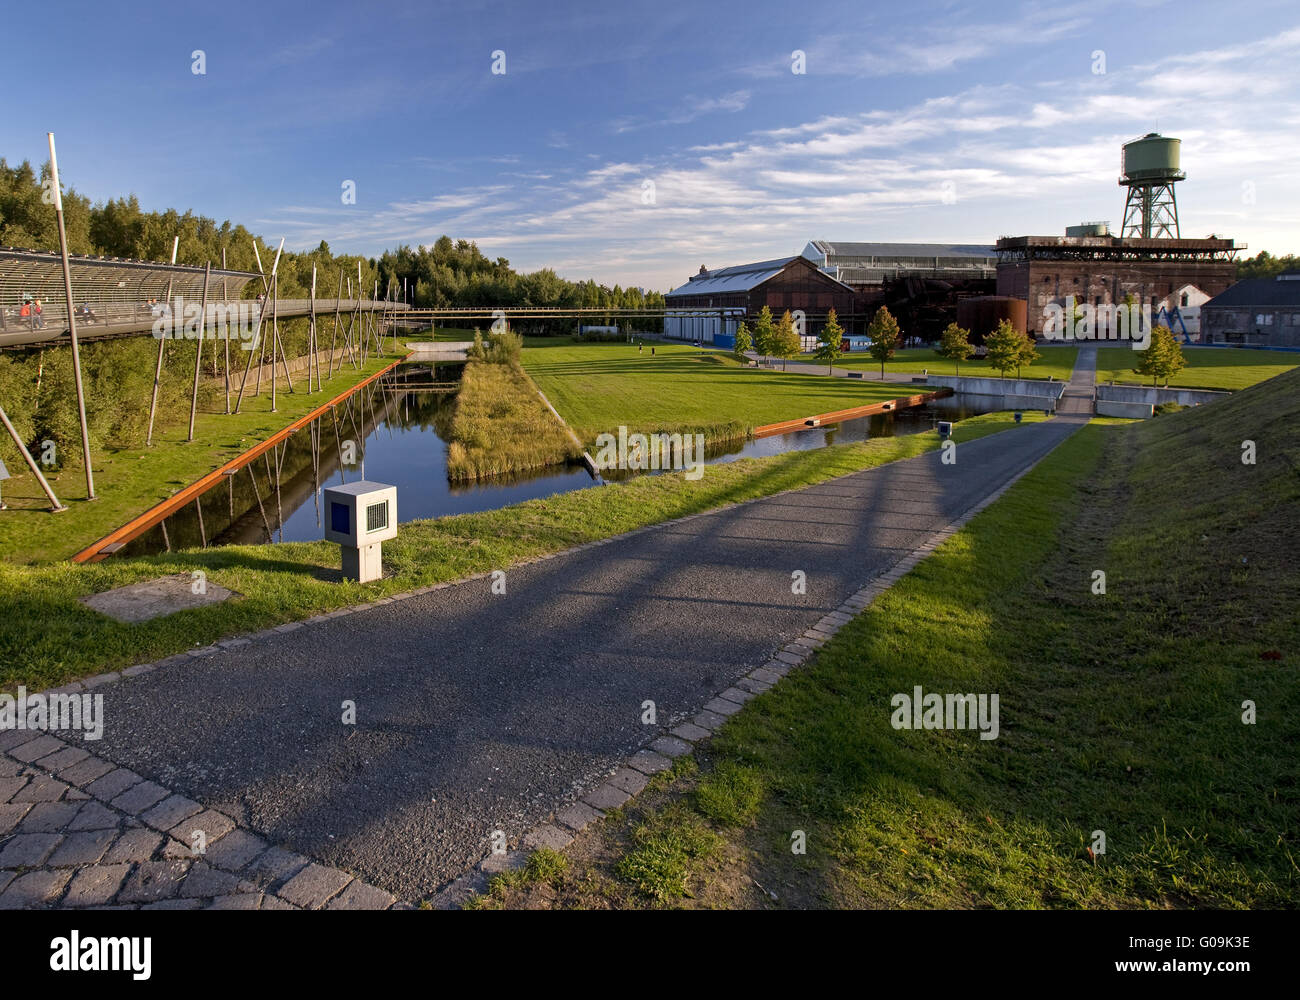 Westpark with Bochum Hall of the Century, Germany. - Stock Image